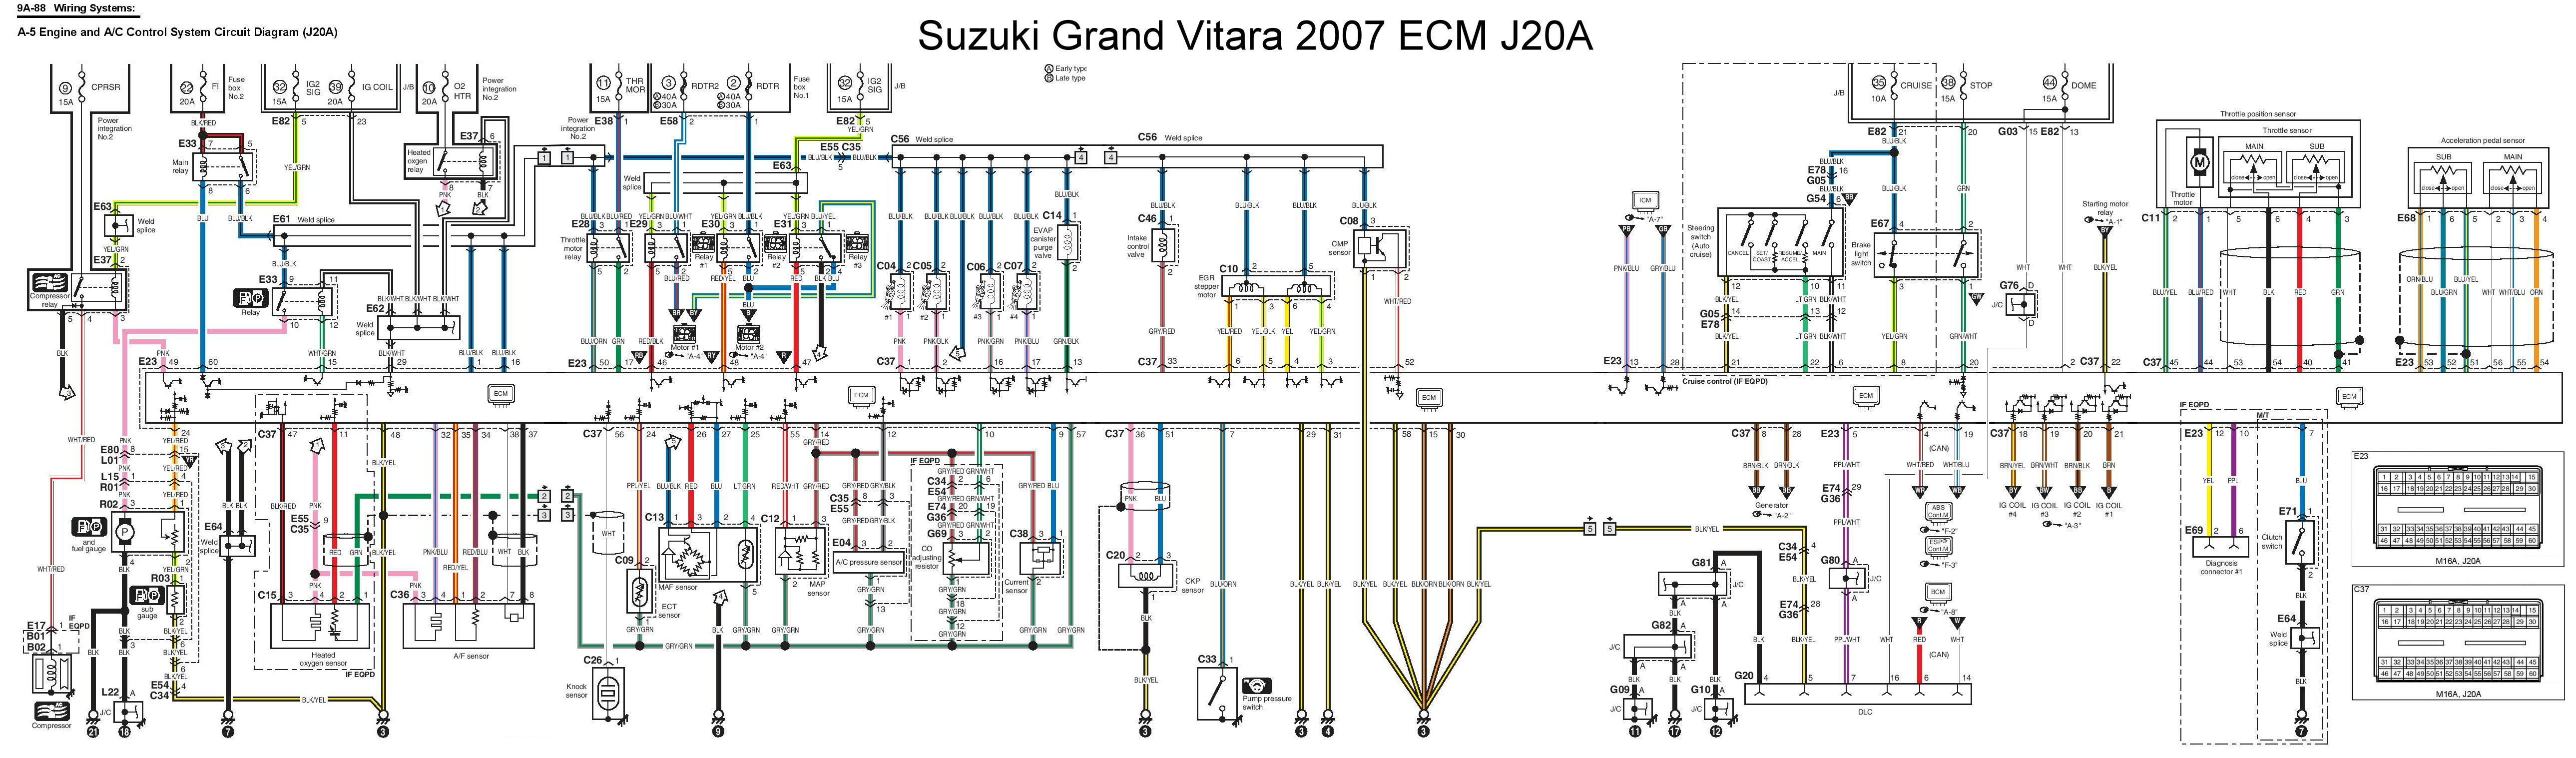 2006 suzuki grand vitara wiring diagram 39 wiring Suzuki Swift Engine Suzuki  G13 Engine